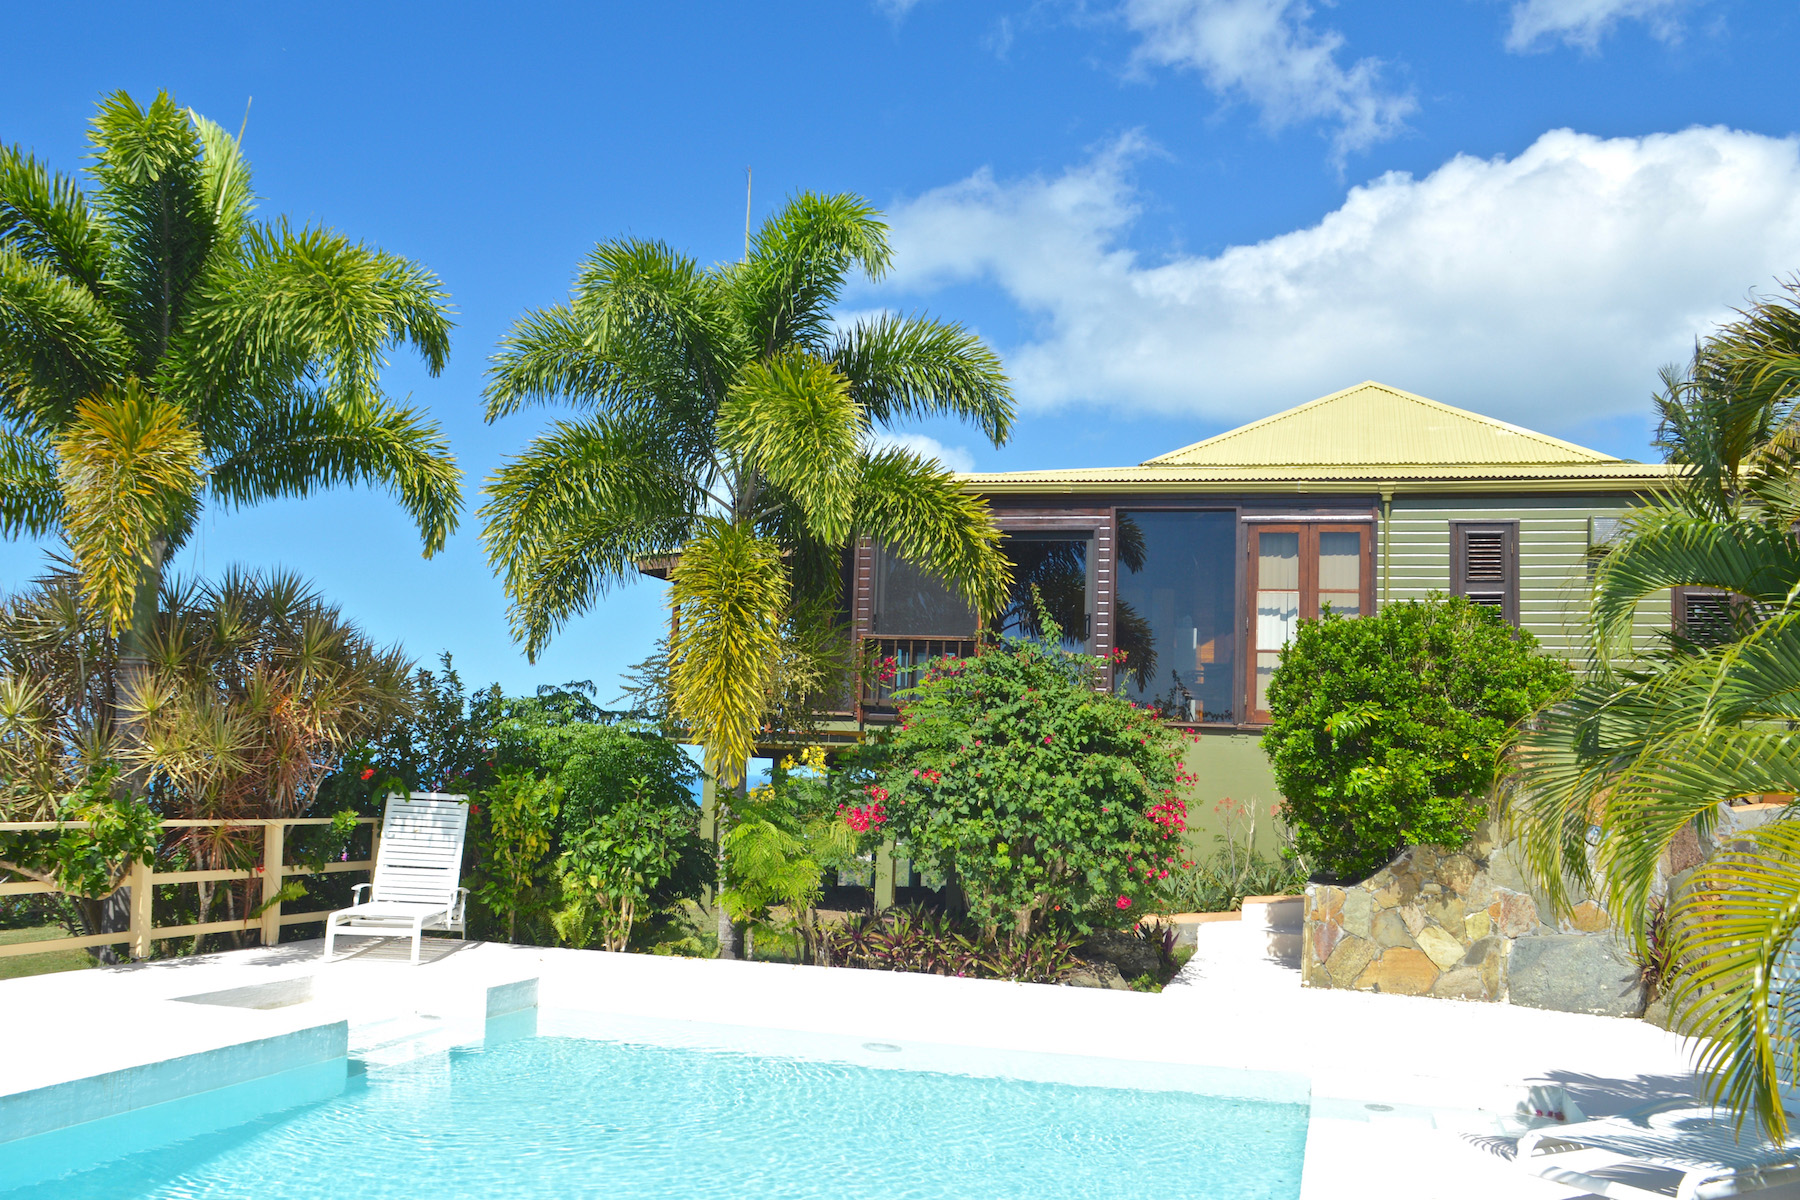 Single Family Home for Sale at Serenity House Cane Garden Bay, Tortola British Virgin Islands